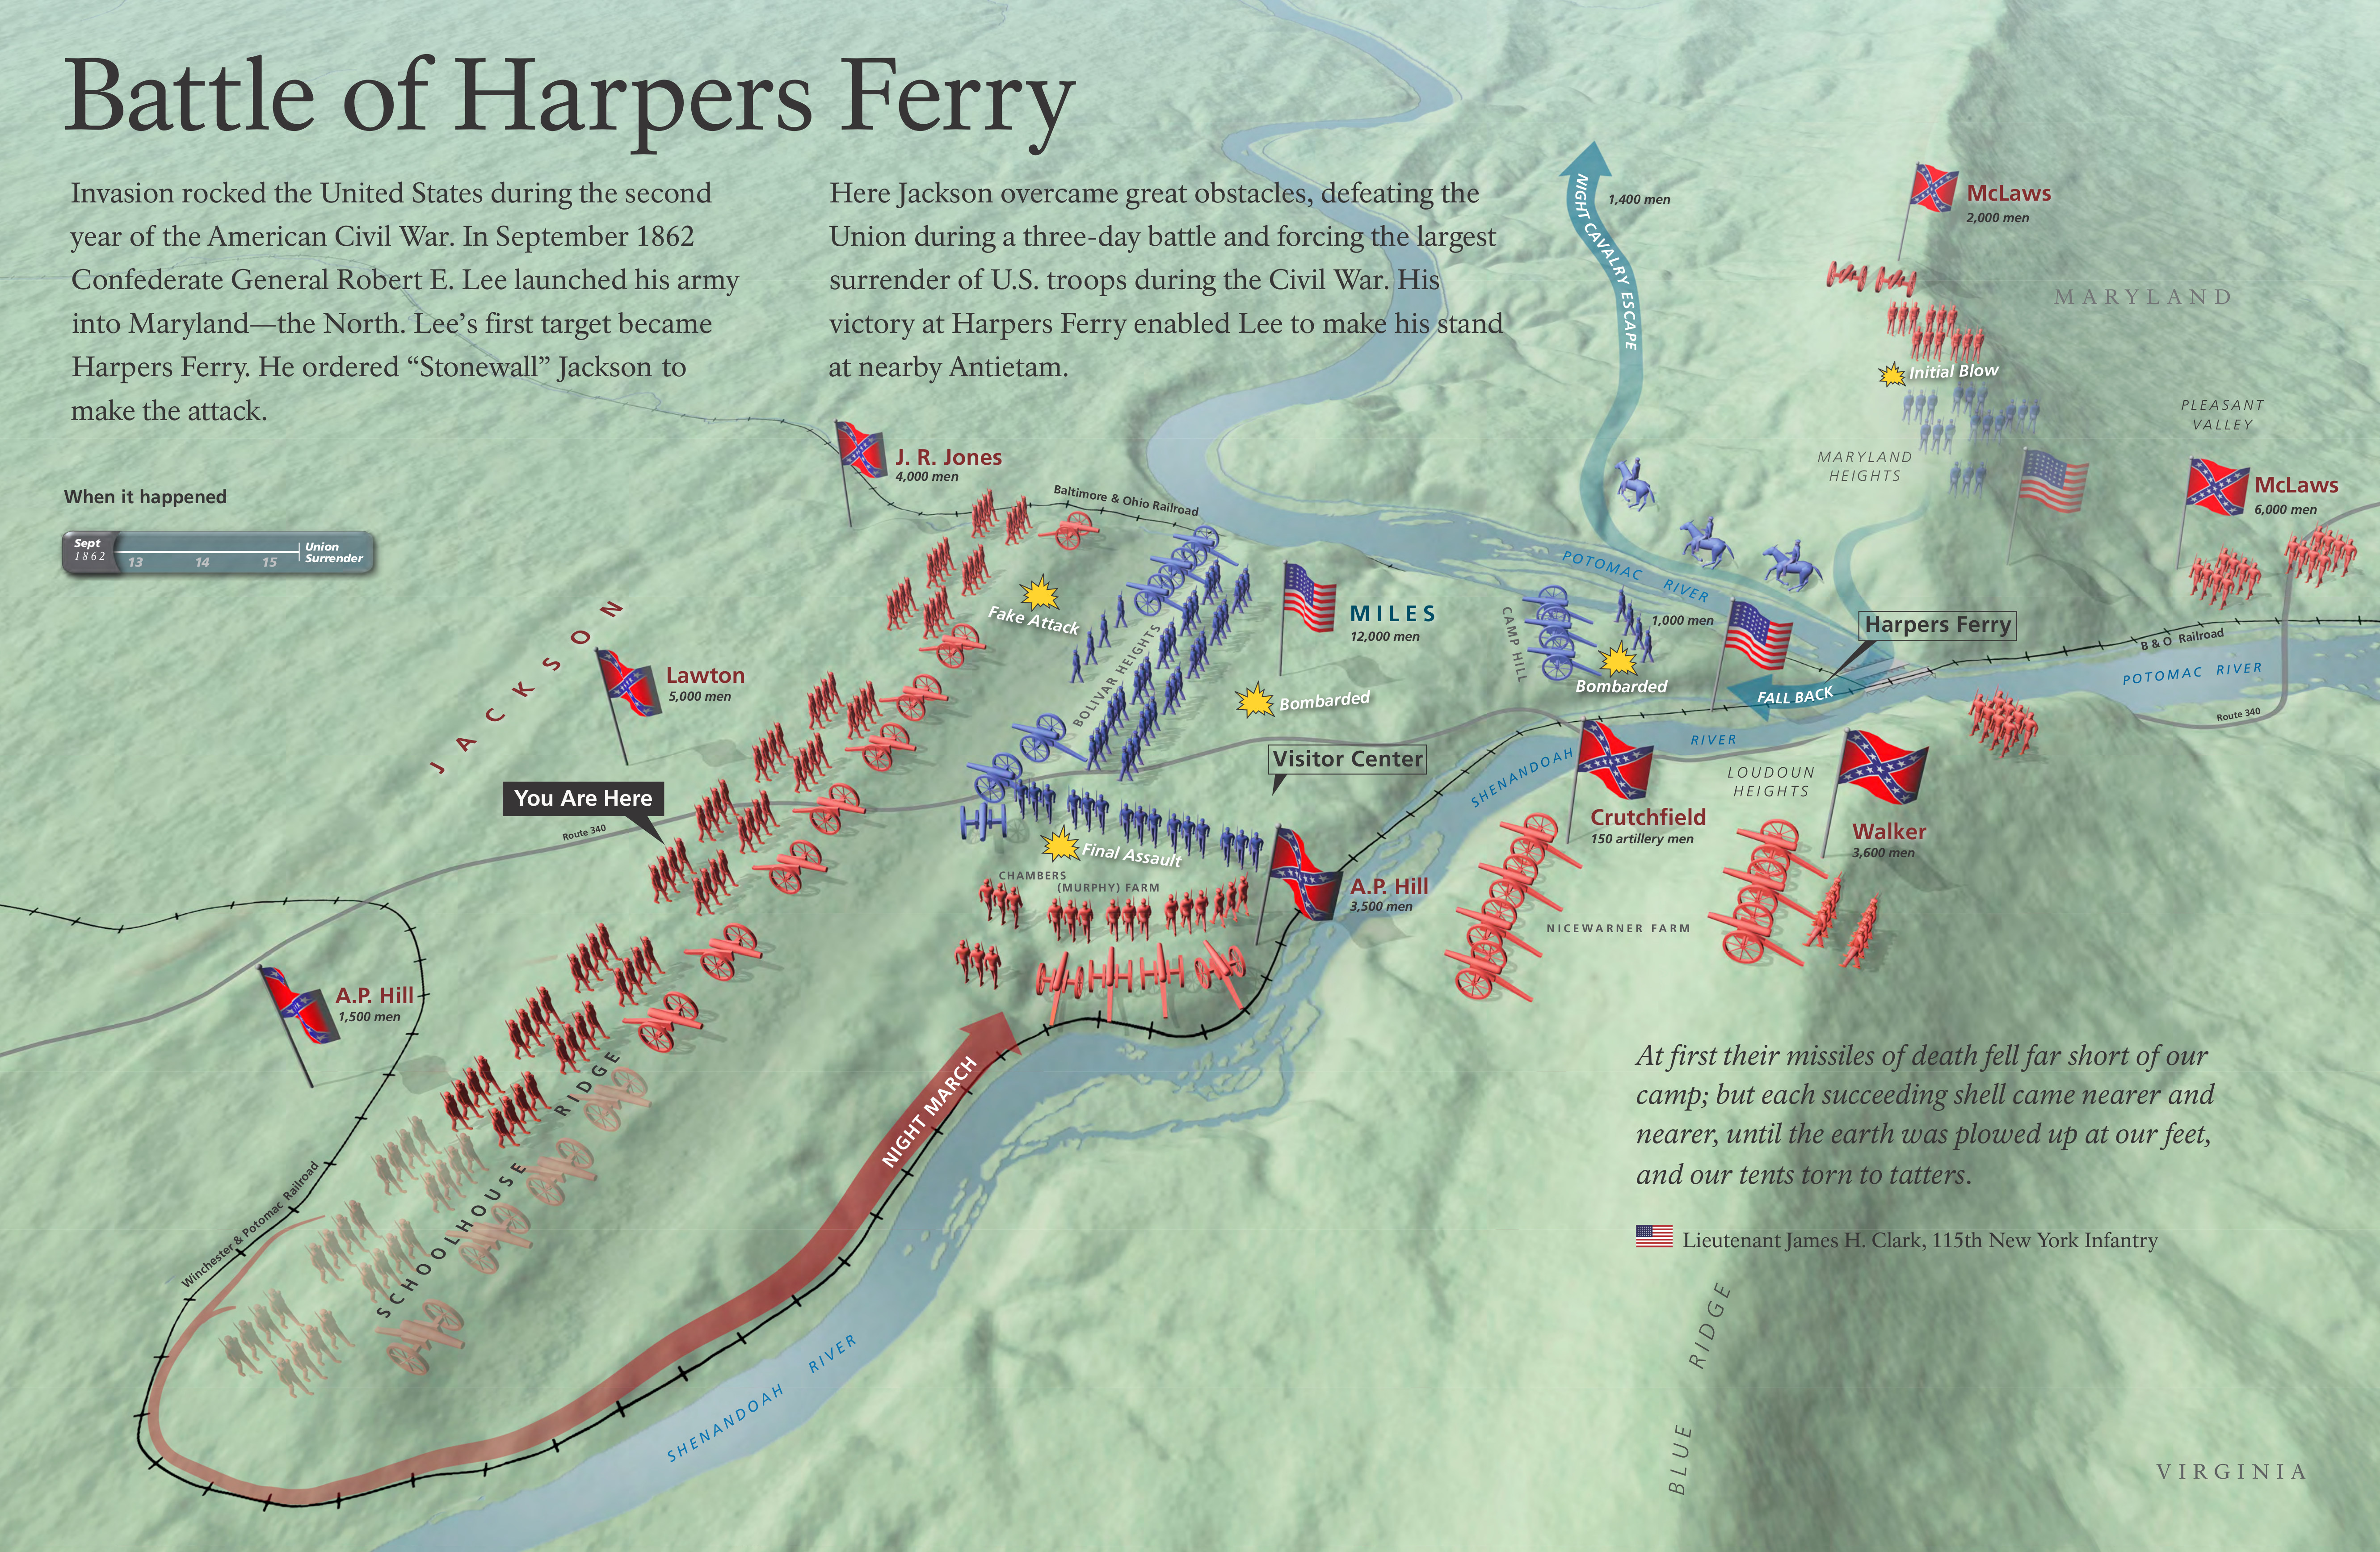 Harpers Ferry Maps NPMapscom Just Free Maps Period - Washington dc ferry map